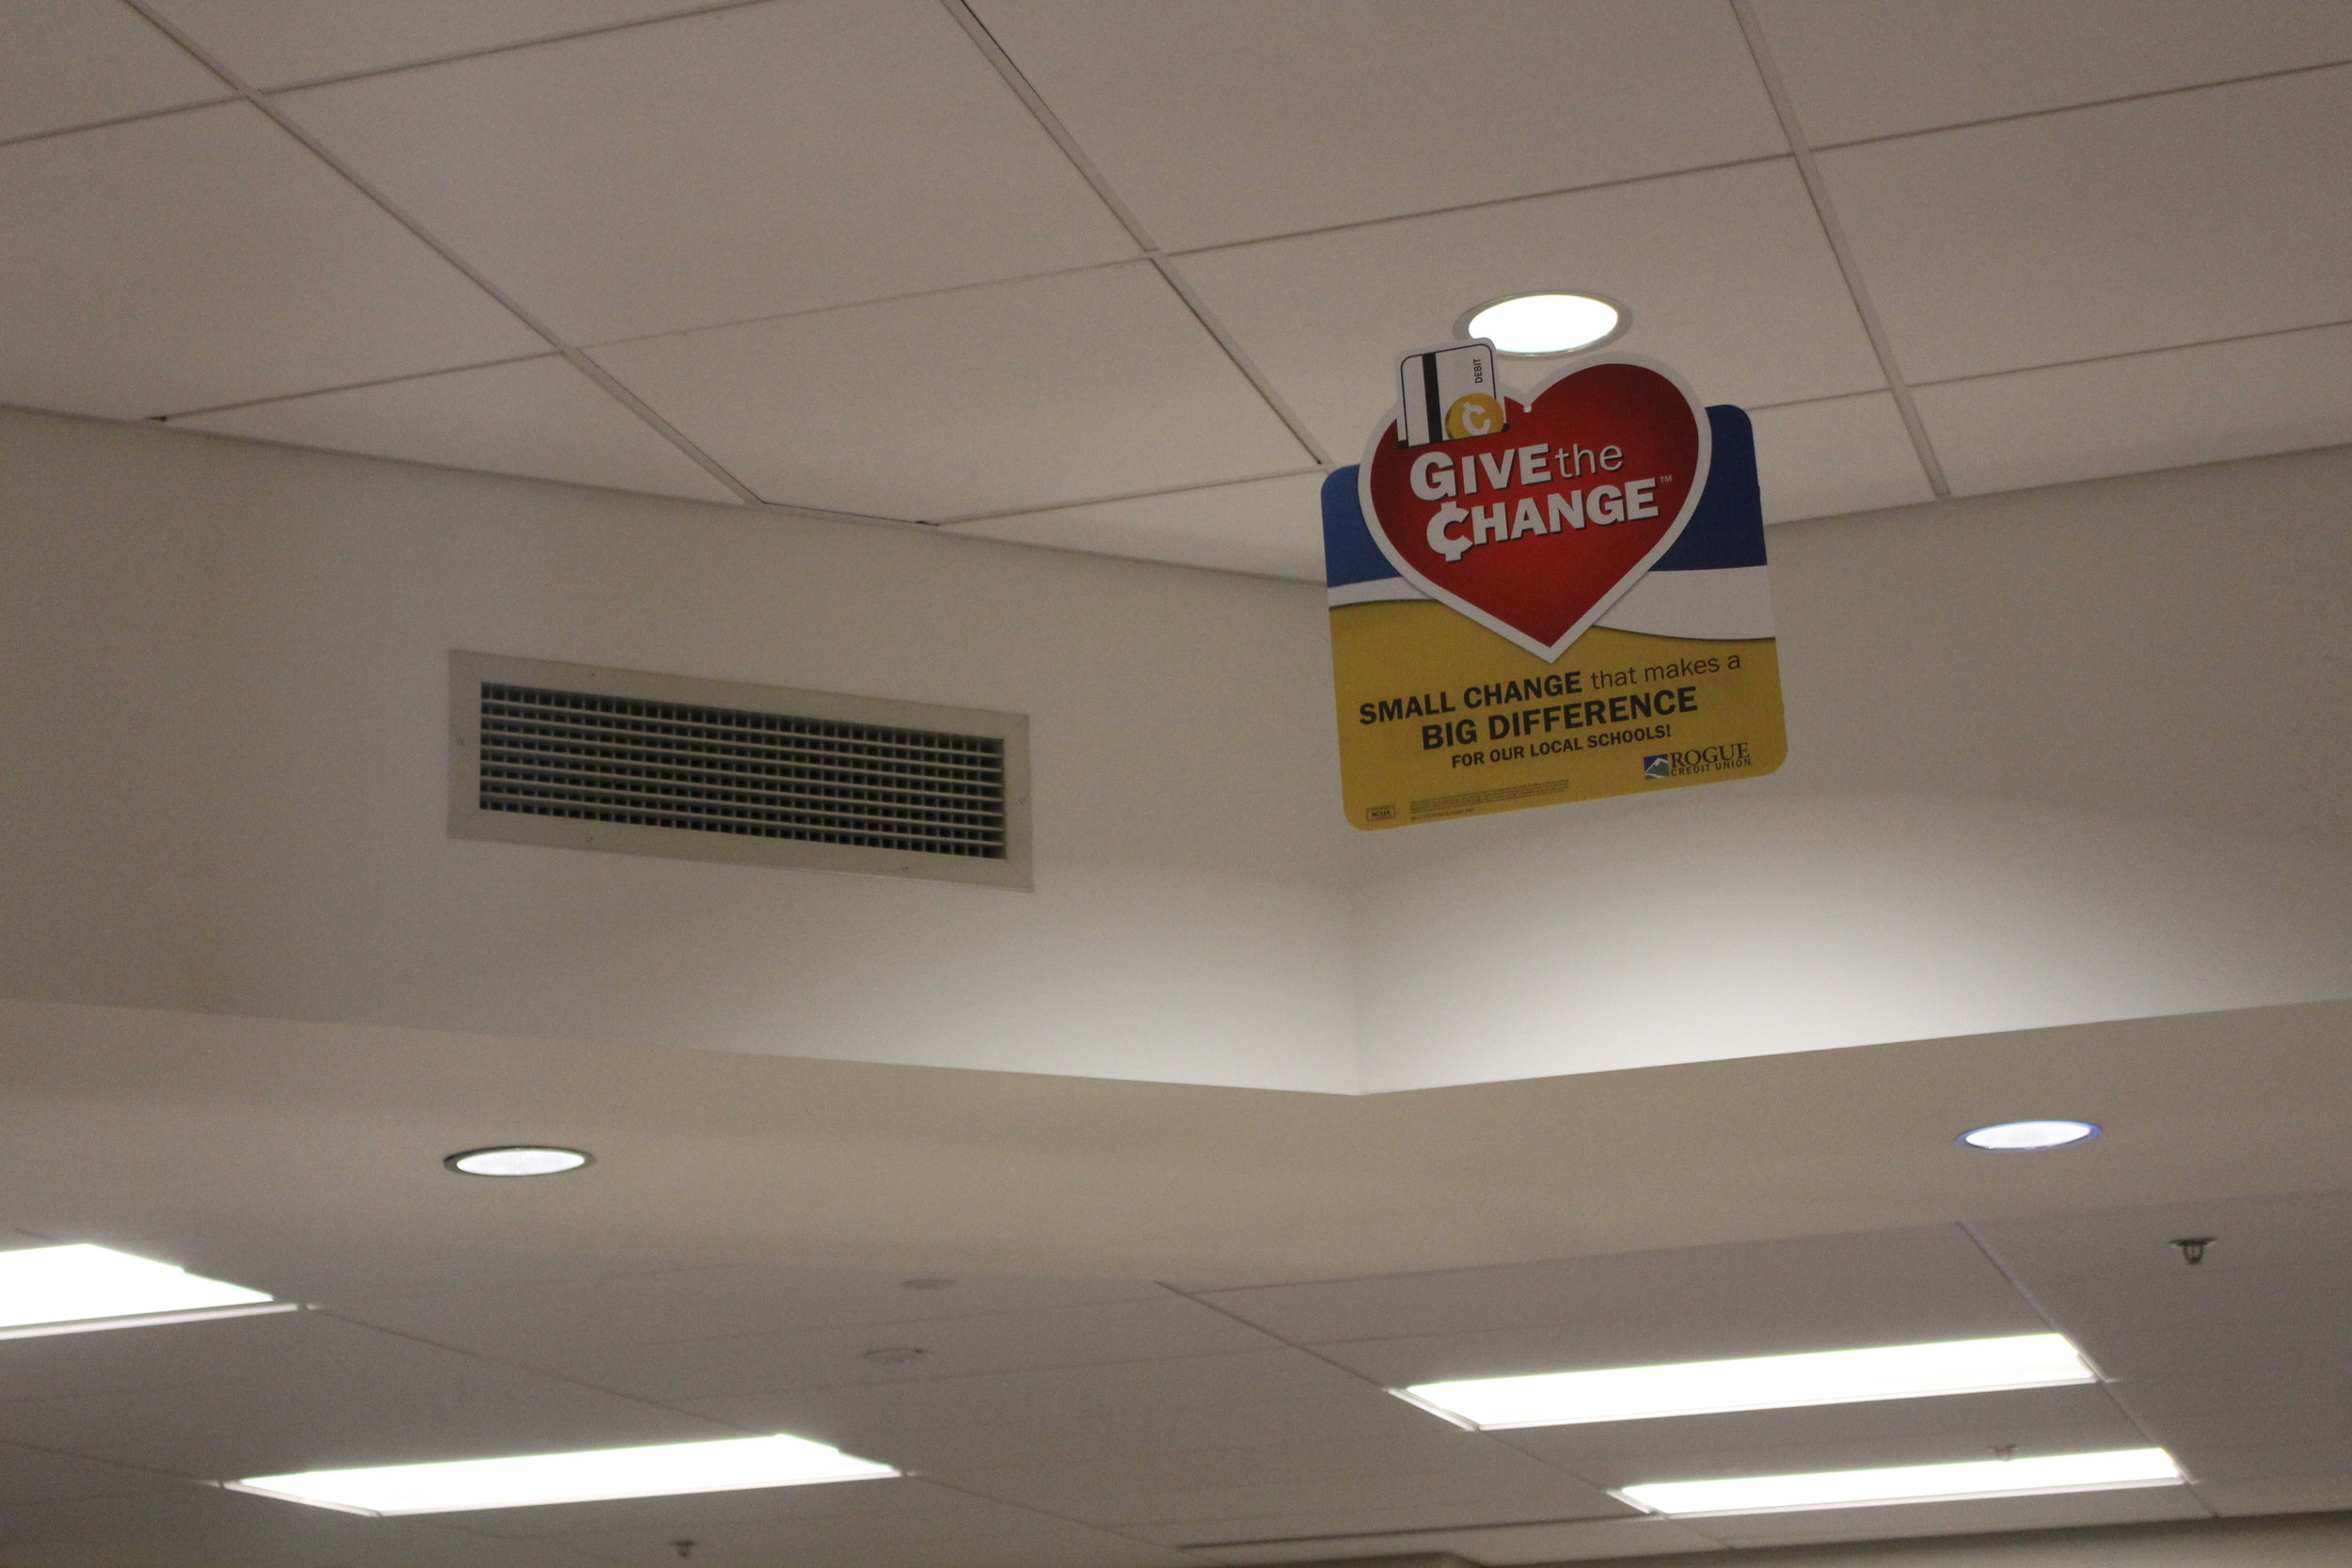 Ceiling Hangers - Done on Corex that had been router cut, printed on both sides, then hole punched on the top.